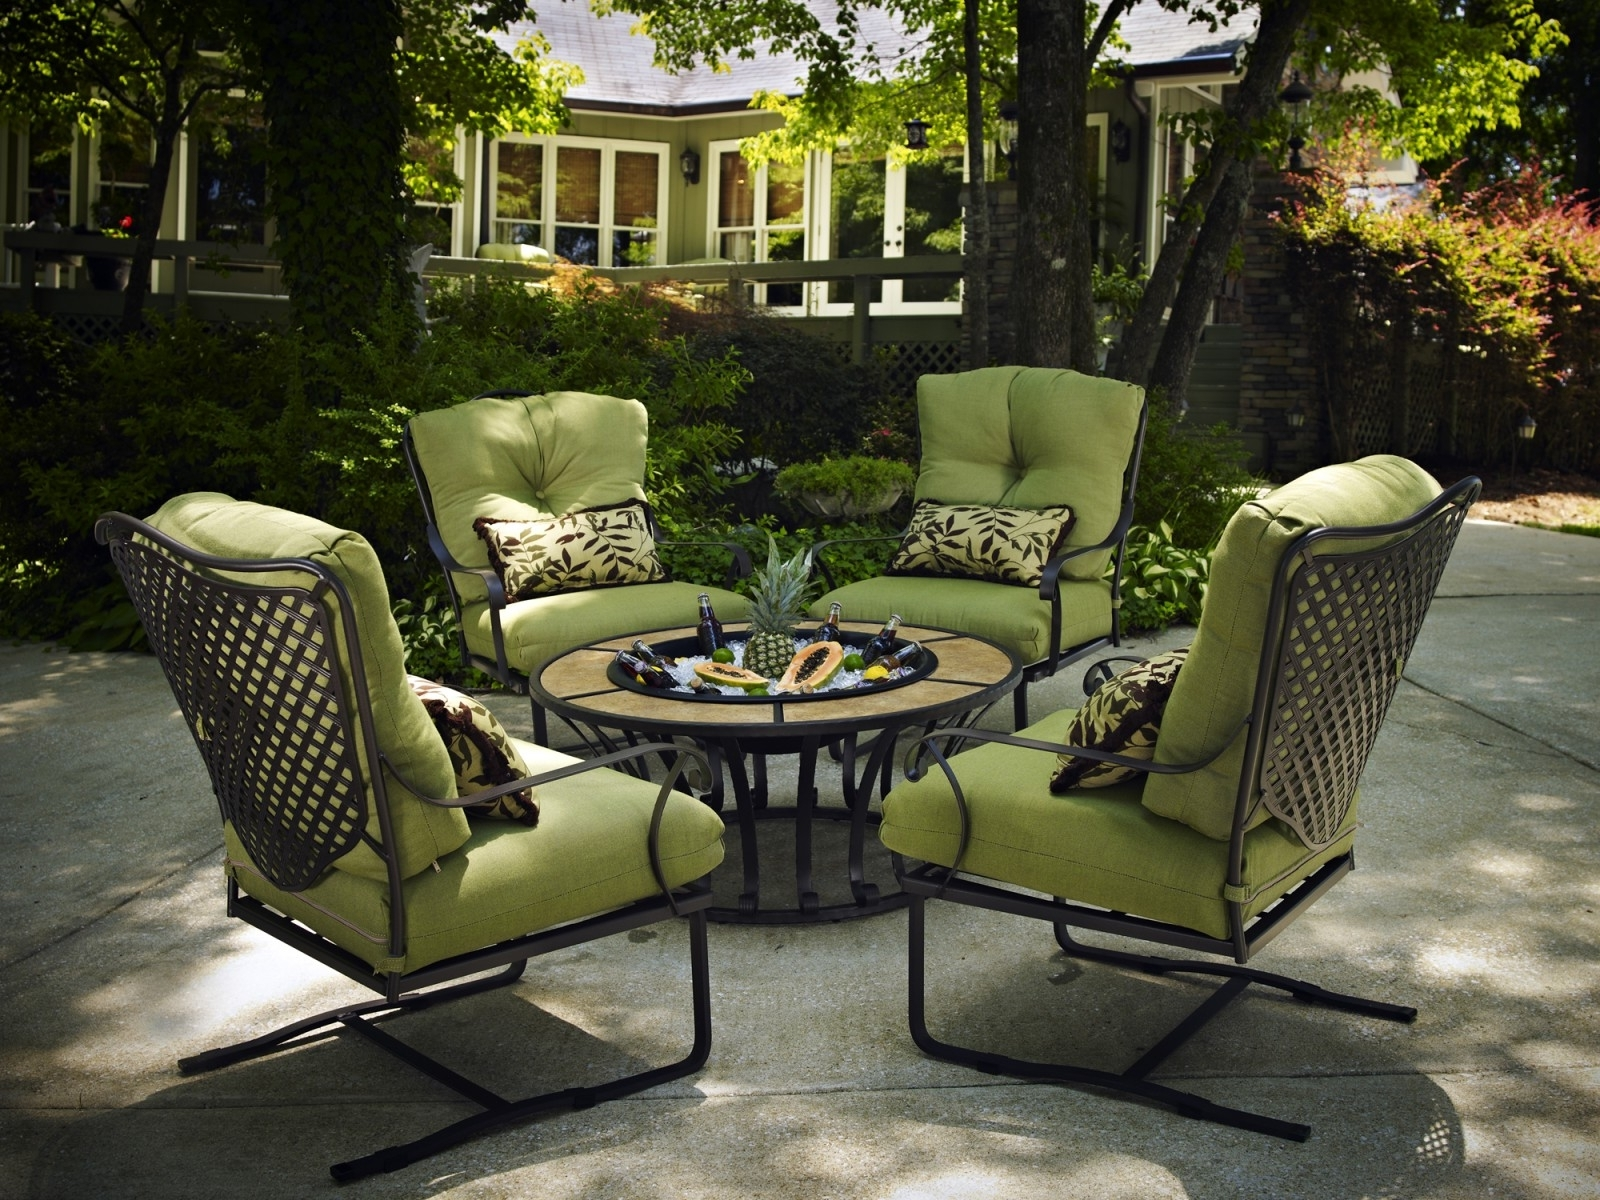 Most Recent Wrought Iron Patio Furniture Adorable Metal Outdoor Patio Furniture Within Metal Patio Conversation Sets (View 17 of 20)